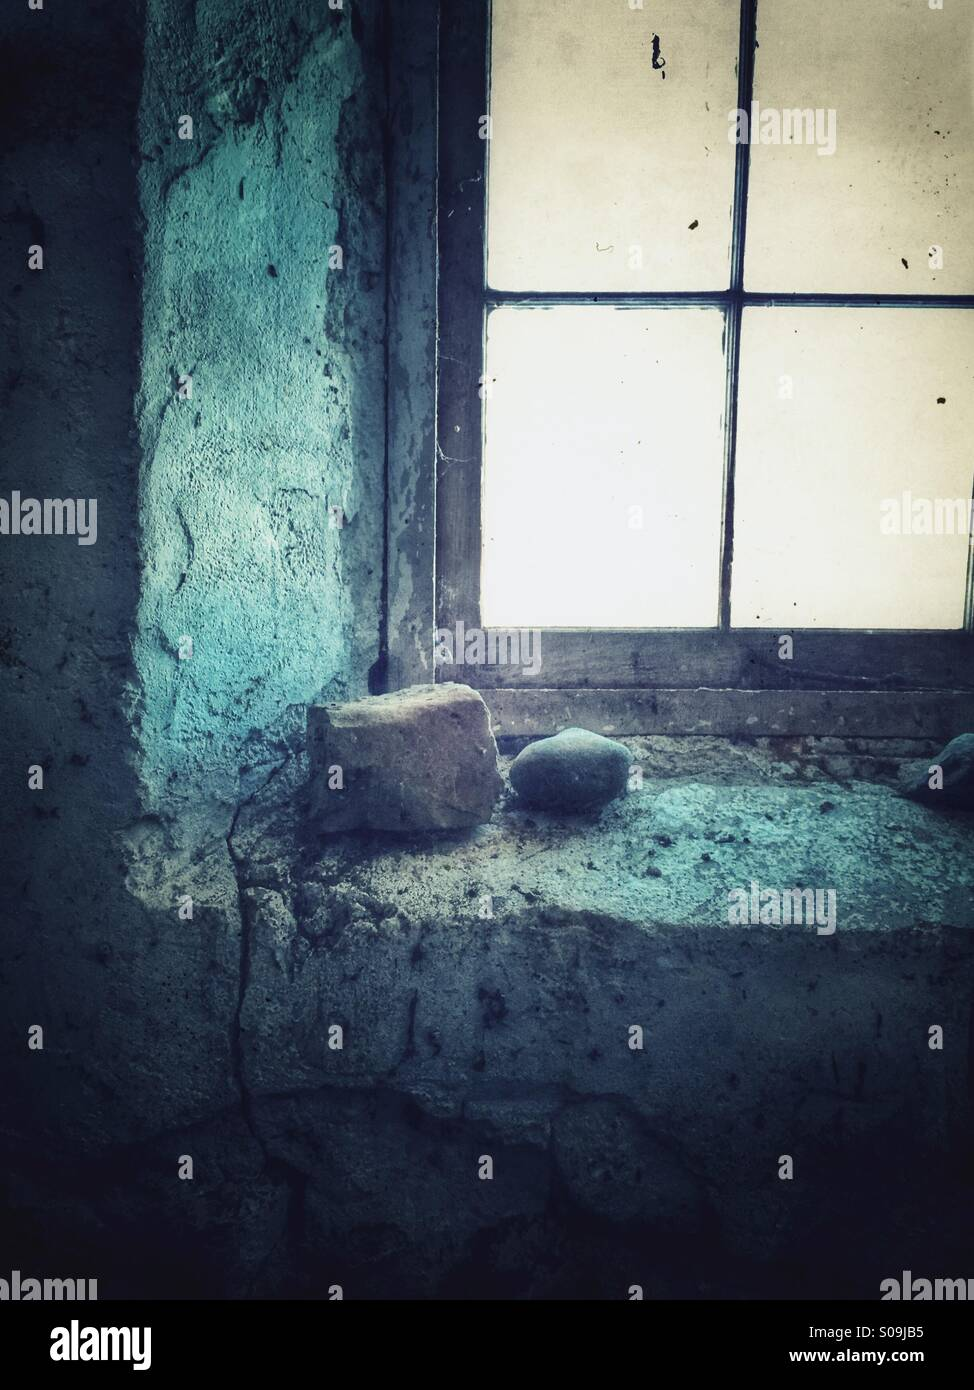 Rocks on the windowsill. - Stock Image